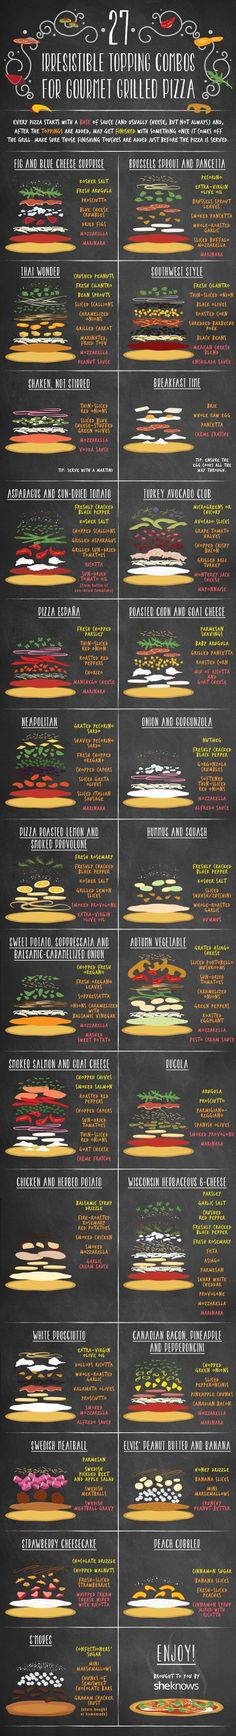 27 Irresistible topping combos for the best grilled pizza (INFOGRAPHIC) - Illustrations and design made for SheKnows.com: